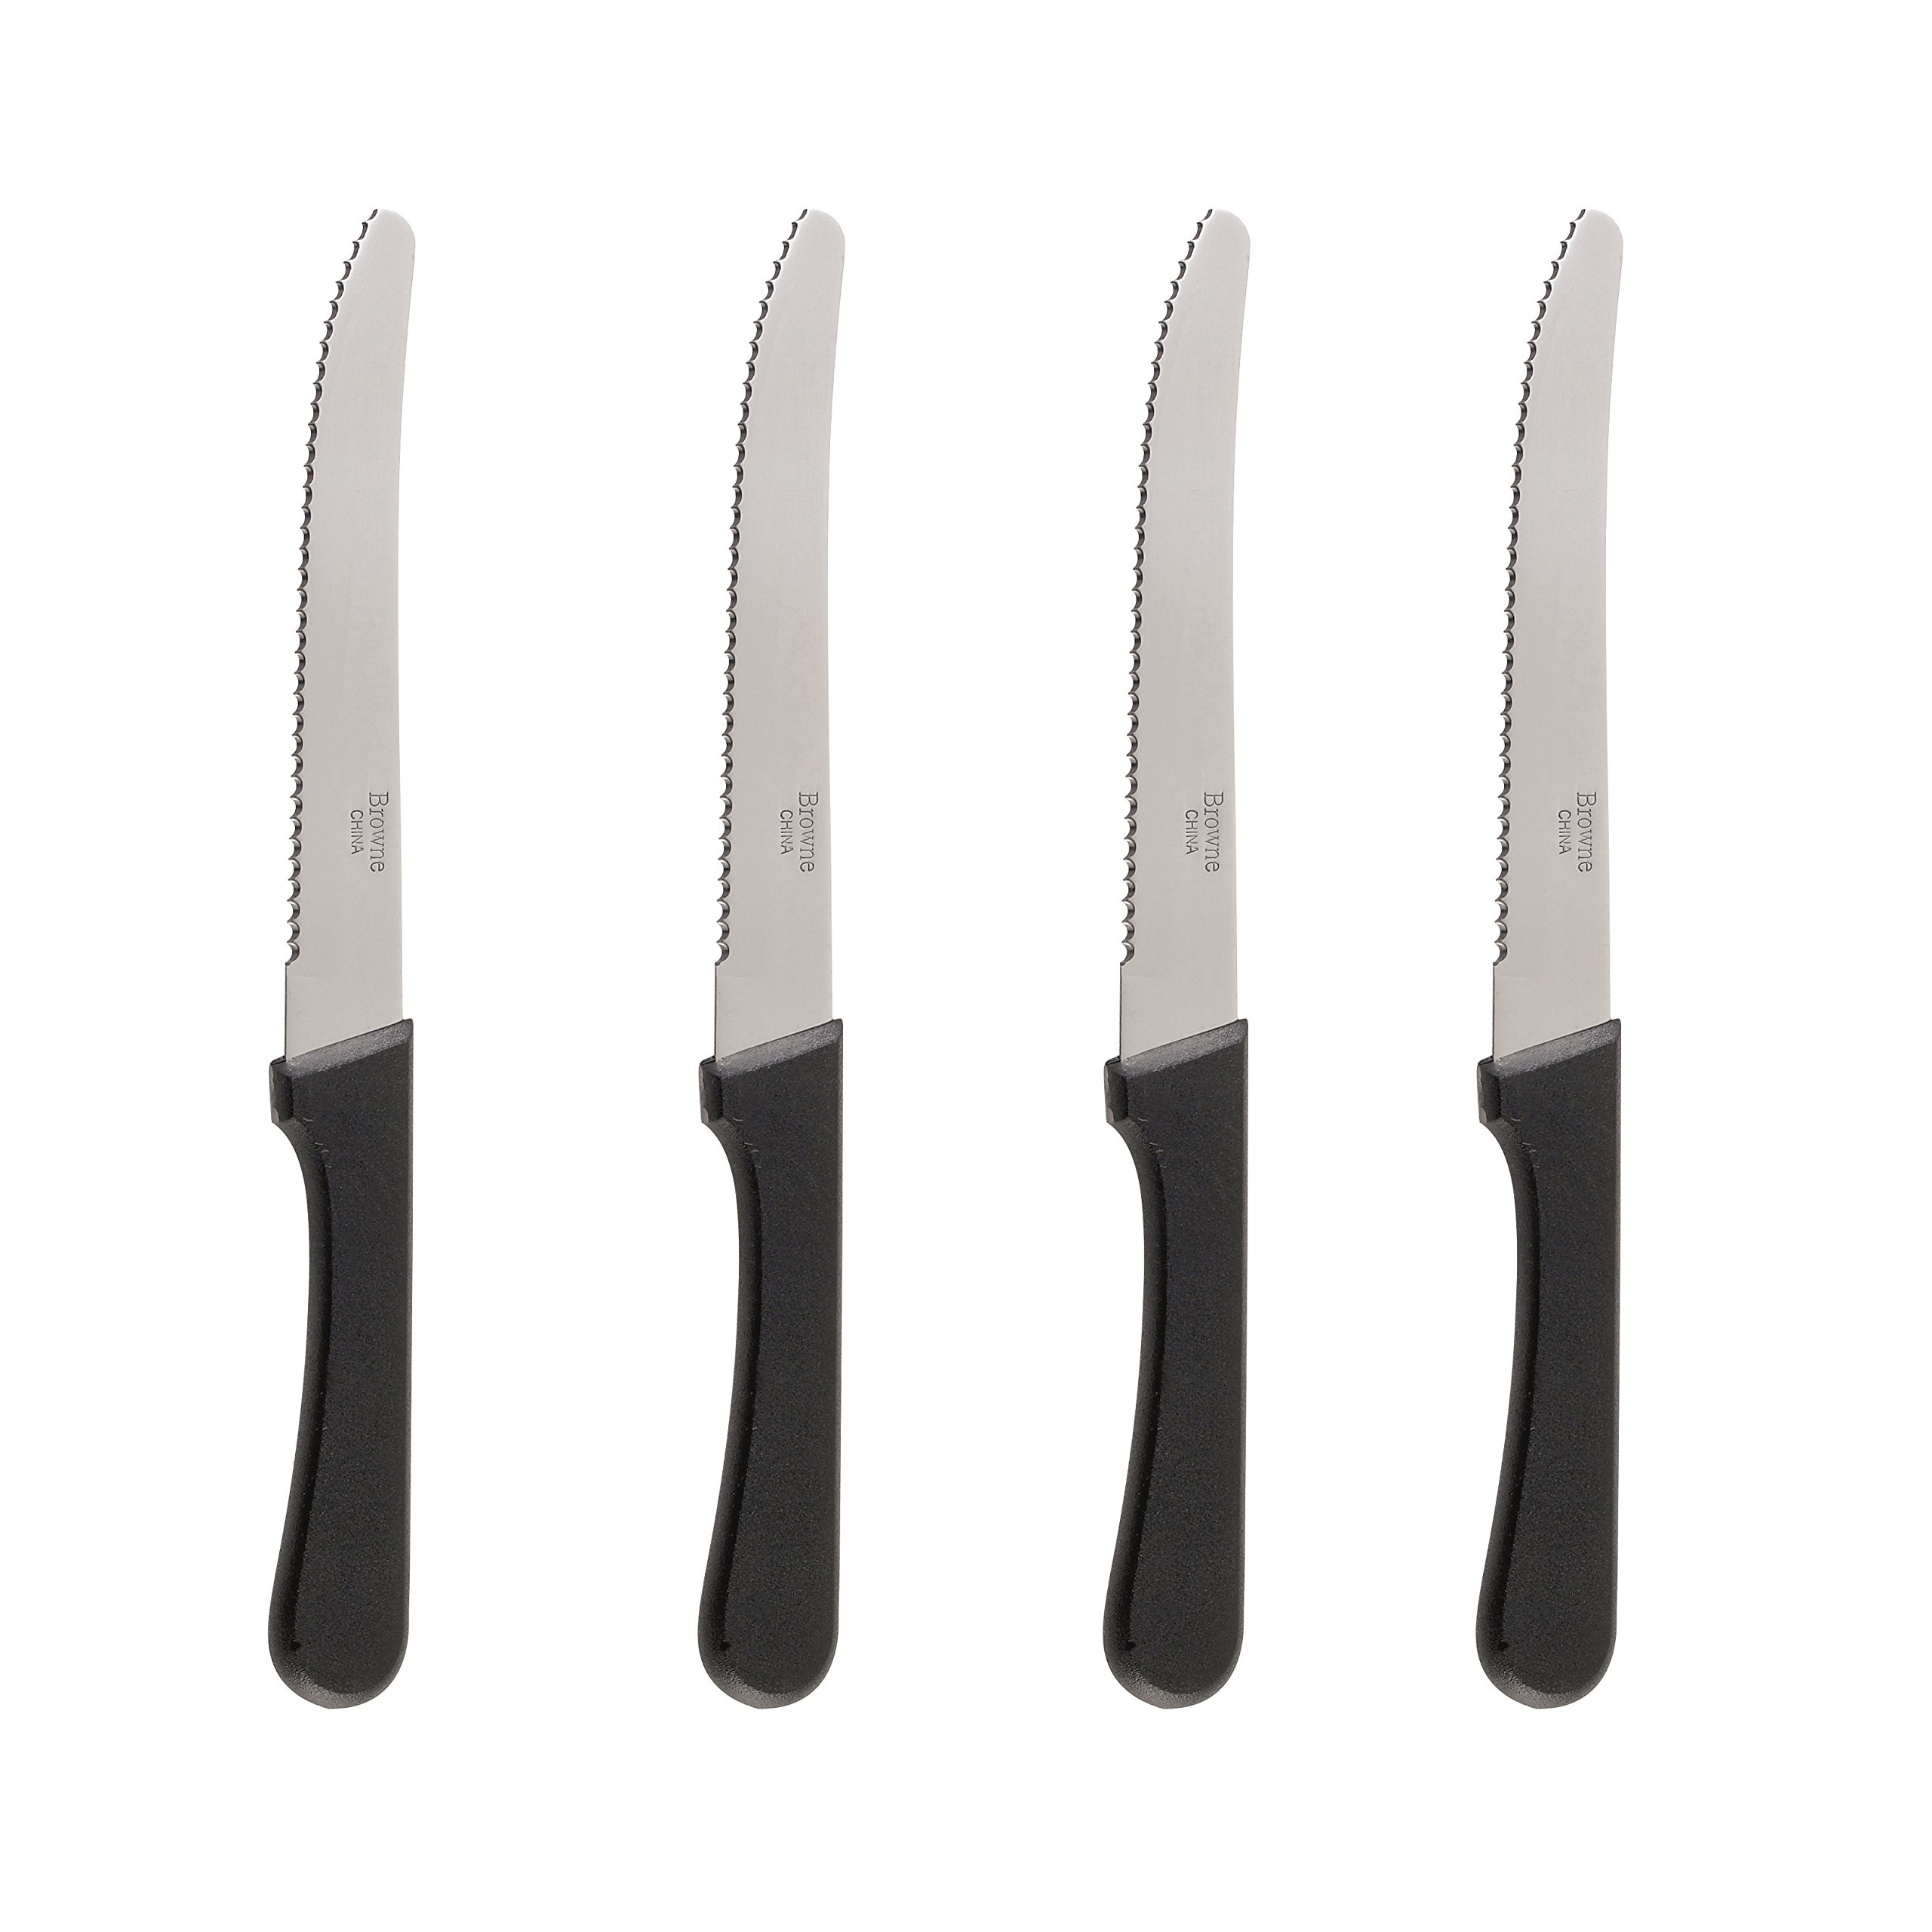 Steak Knives Serrated Set, Restaurant Quality, Stainless Steel, 4.25-Inch, Rounded Tip, Set of 8 (8)